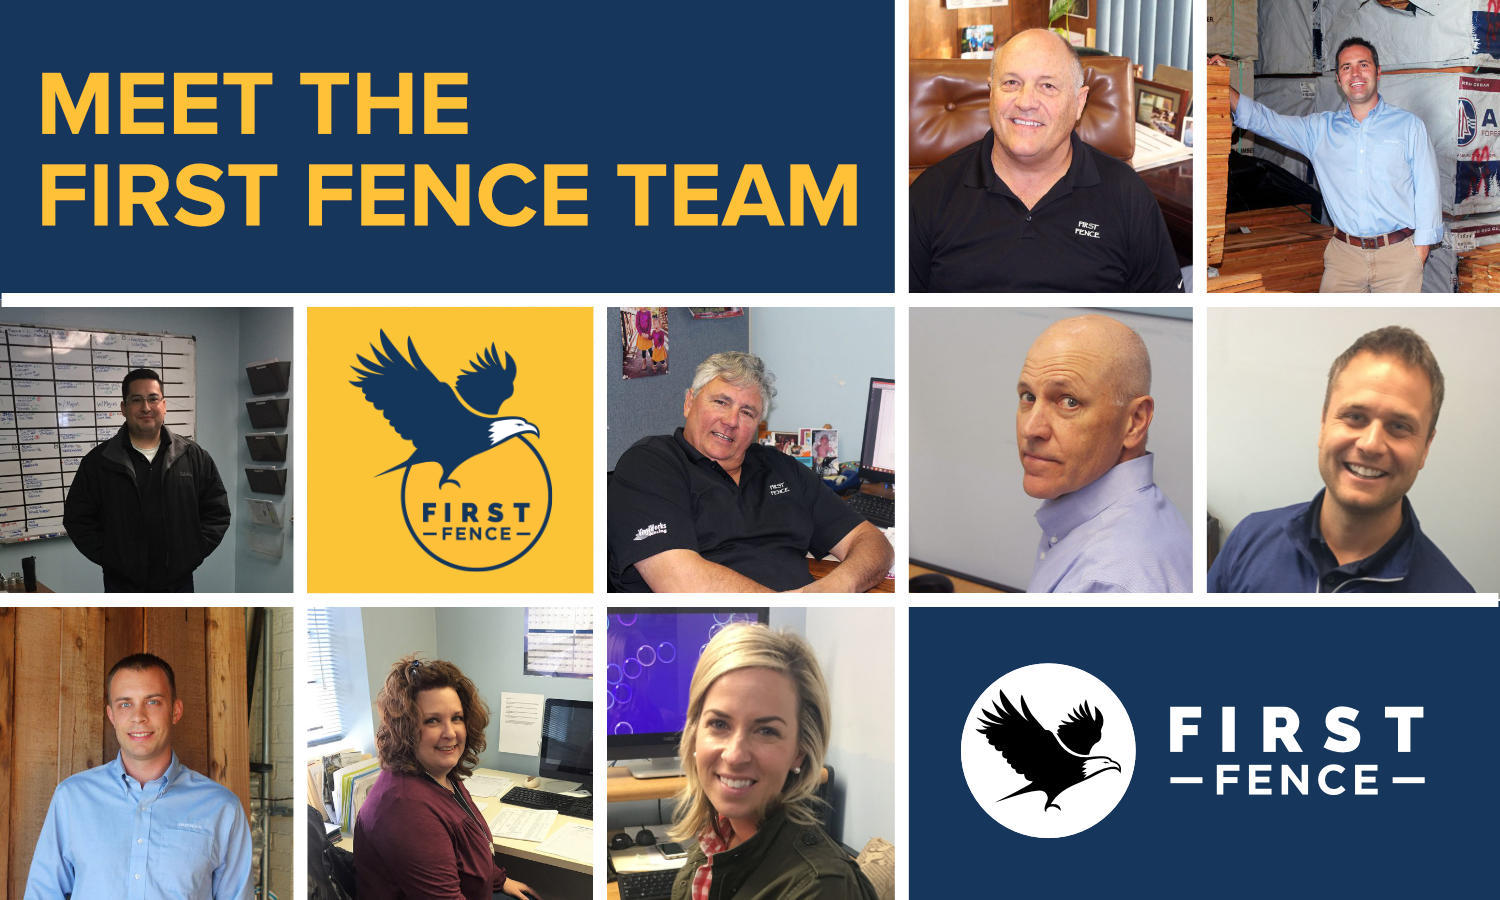 Photo of First Fence team members